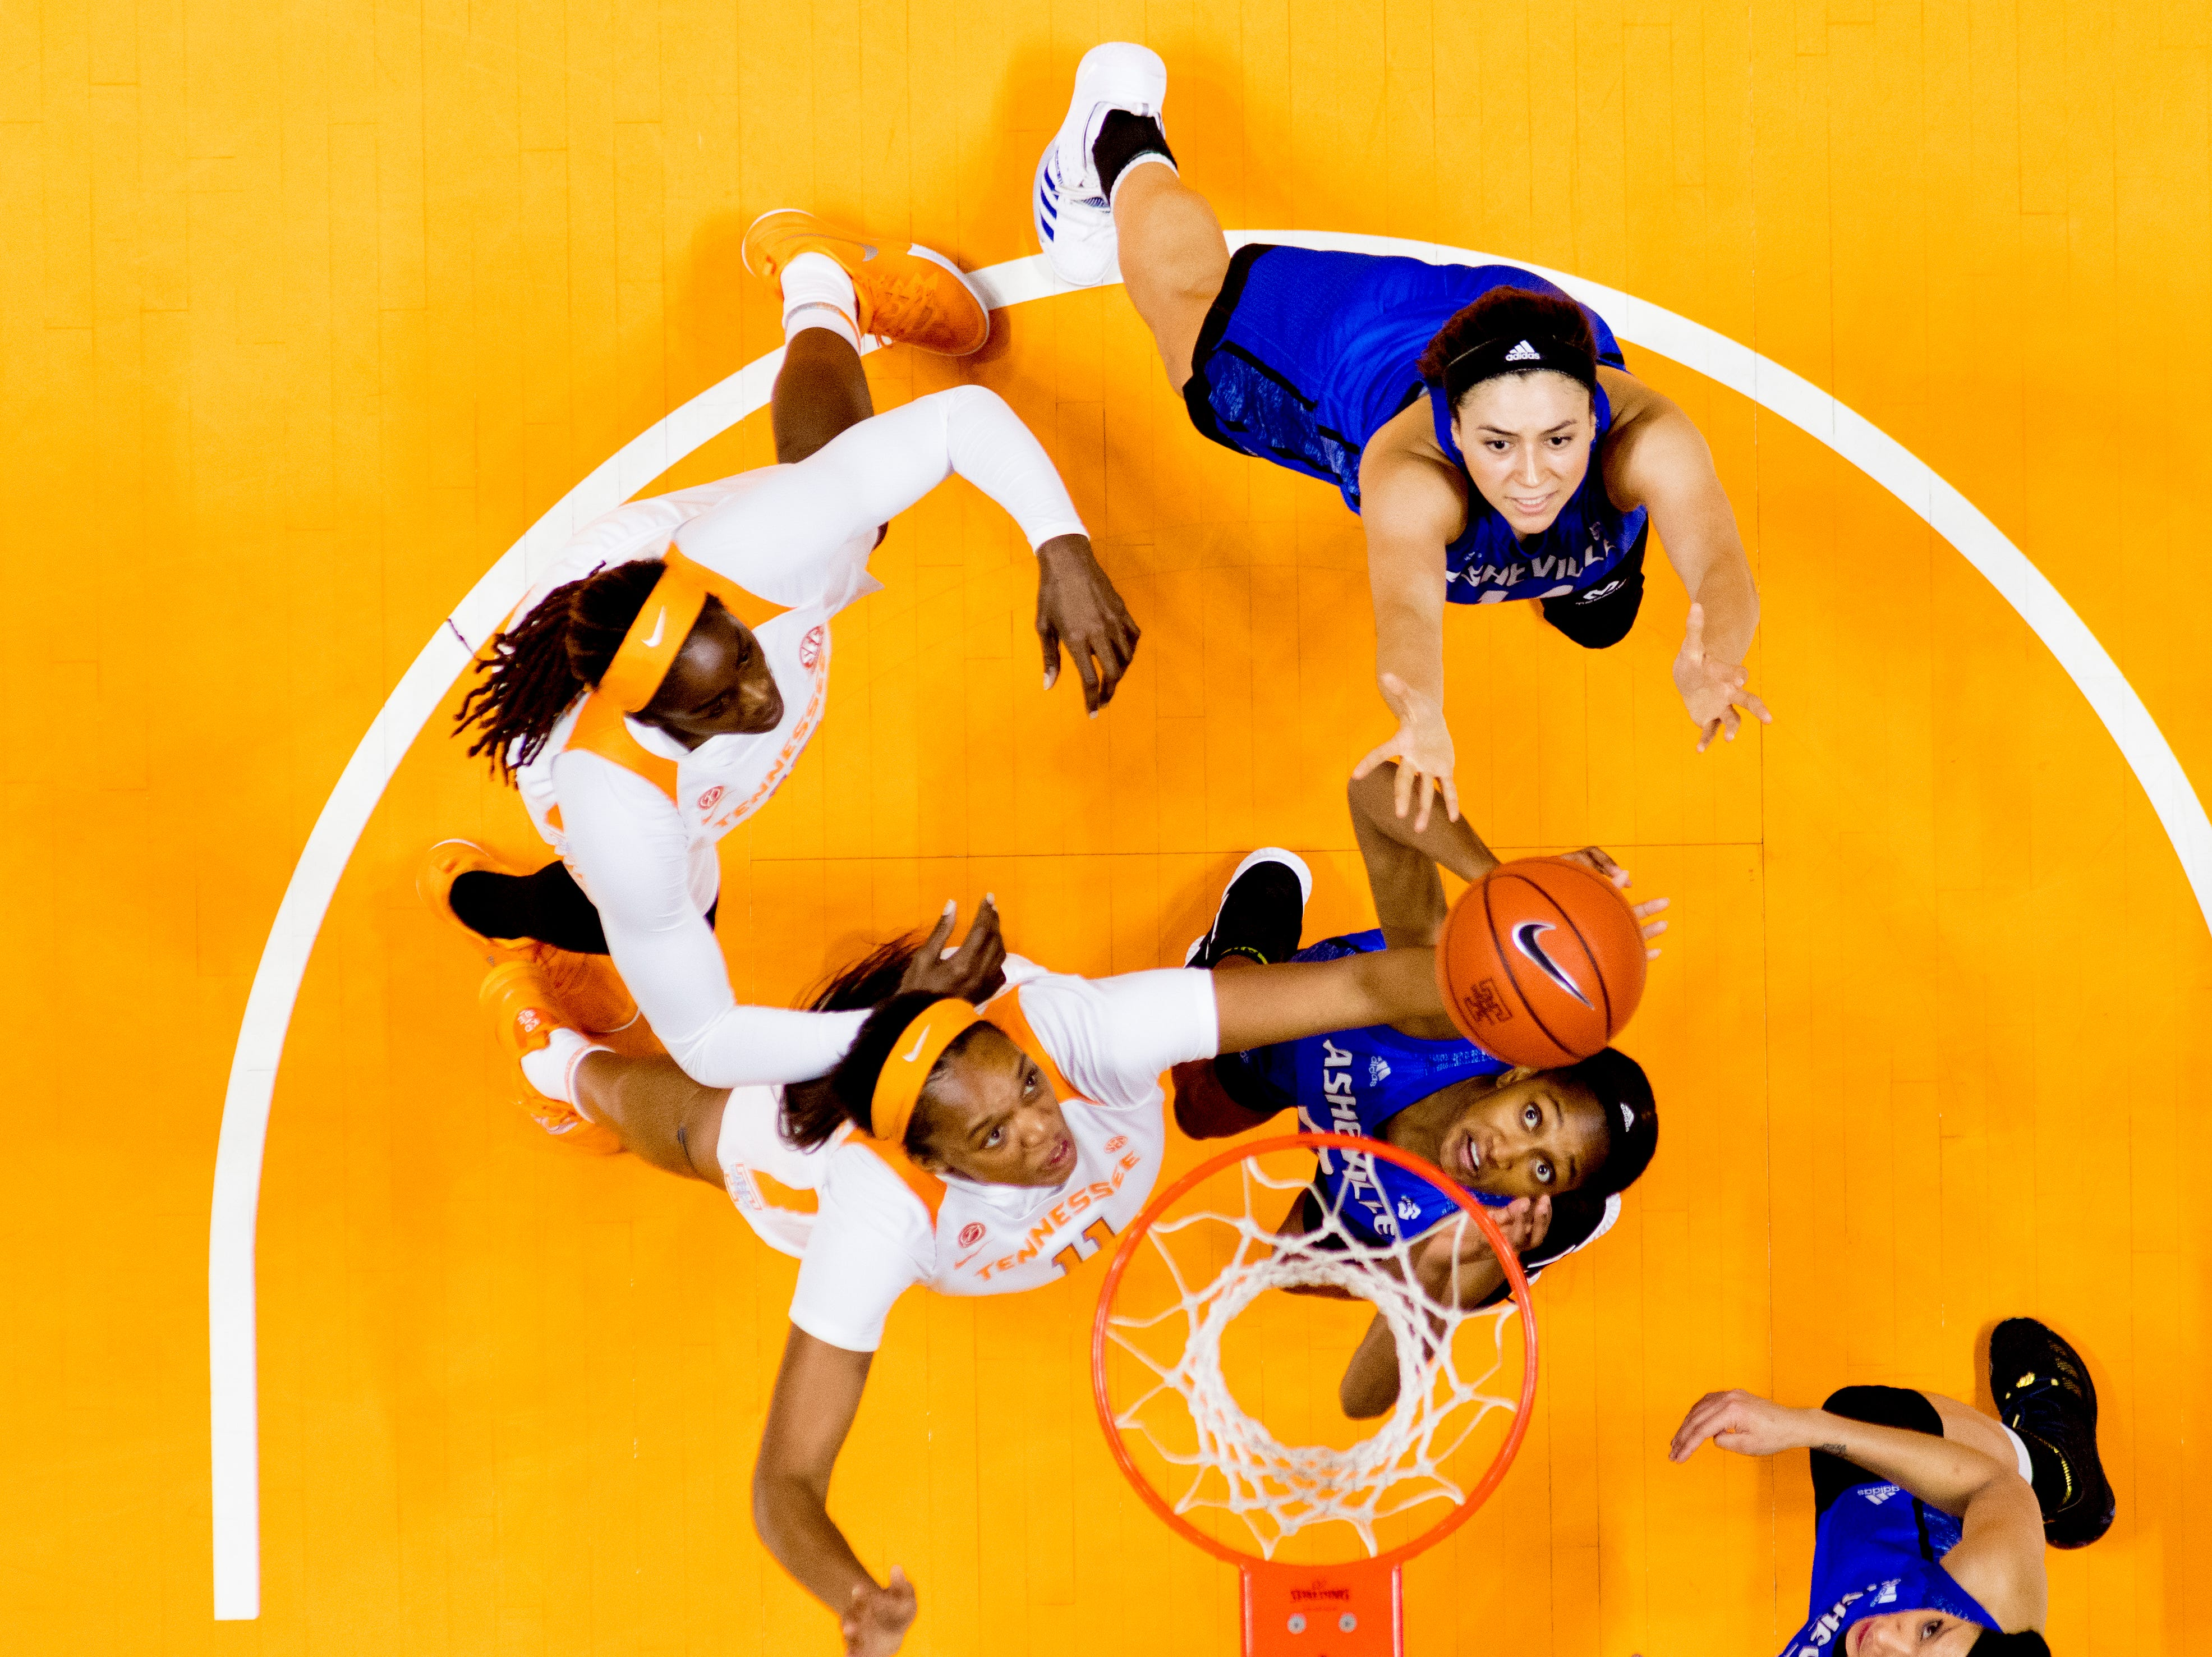 Tennessee center Kasiyahna Kushkituah (11) and UNC Asheville  guard Nadiria Evans (0) reach for the rebound during a game between Tennessee and UNC Asheville at Thompson-Boling Arena in Knoxville, Tennessee on Wednesday, November 14, 2018.